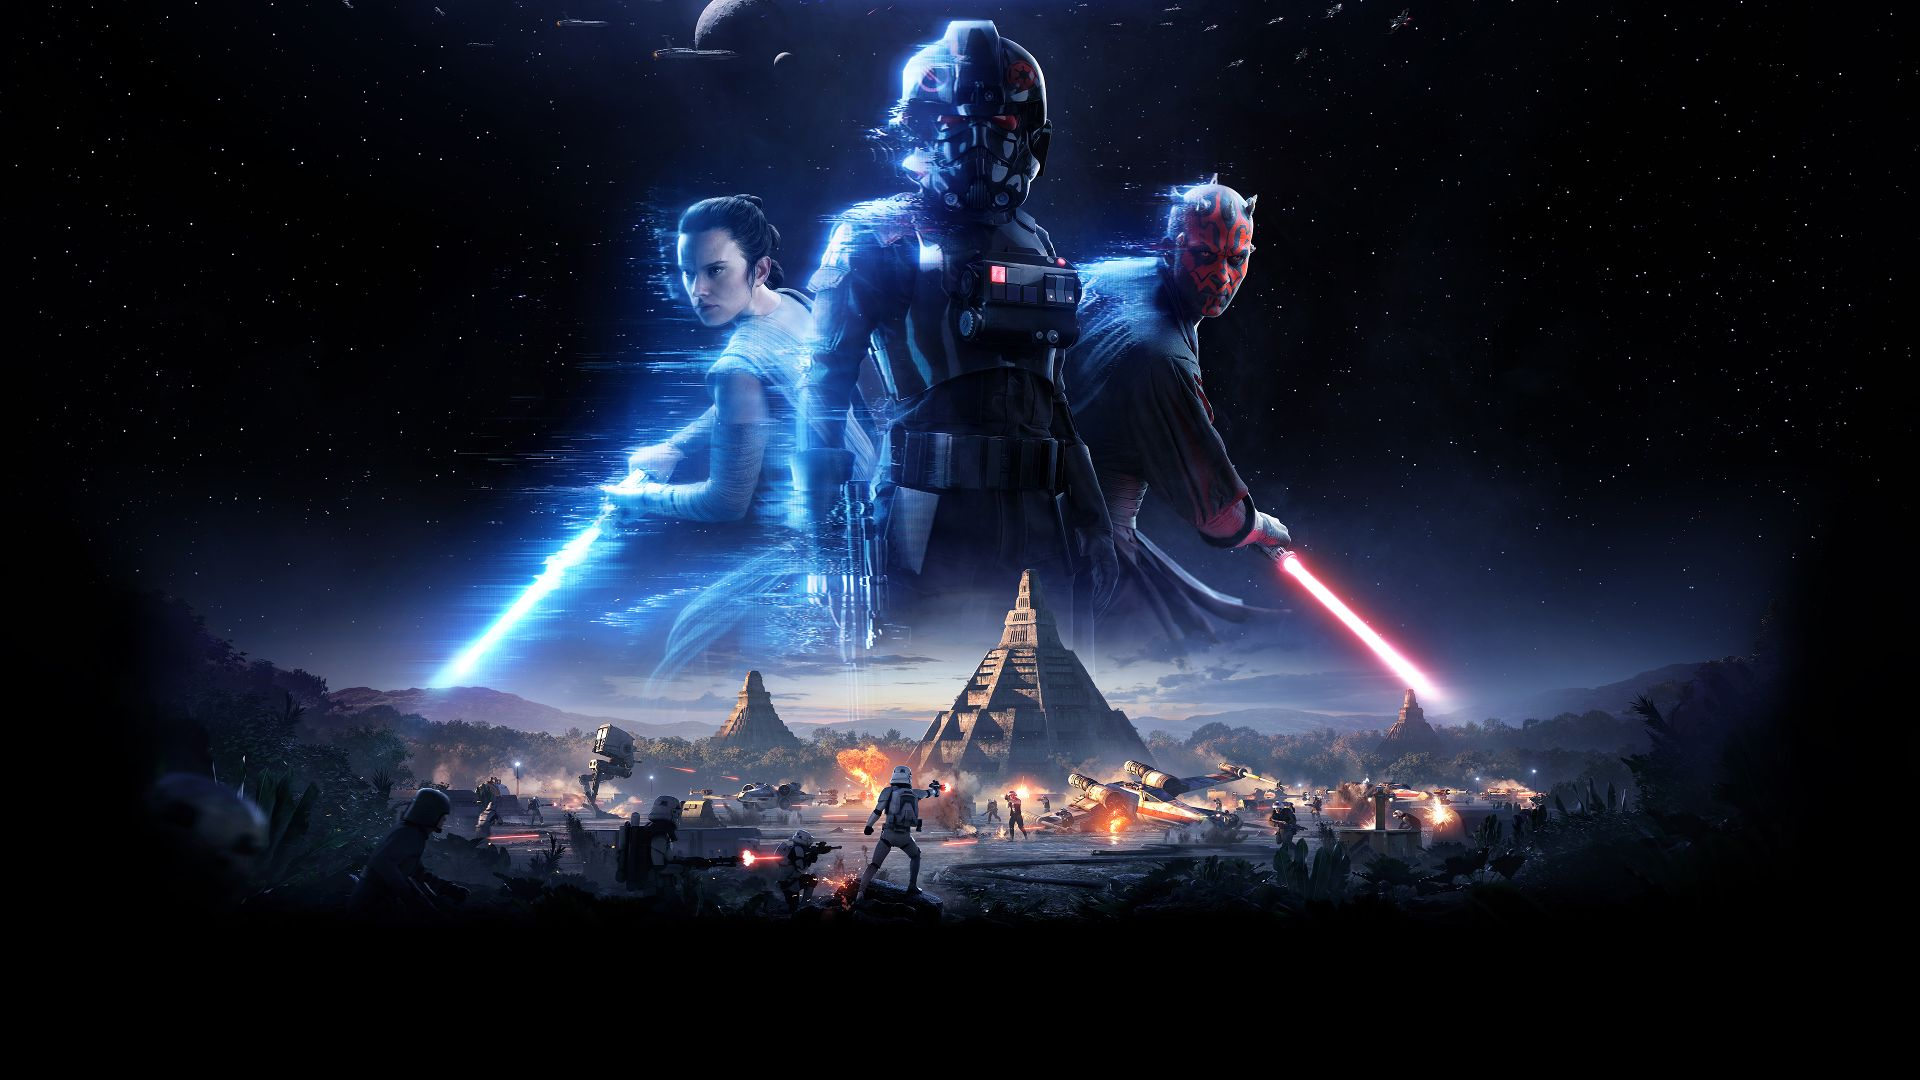 «Star Wars Battlefront 2»: Superese usted mismo